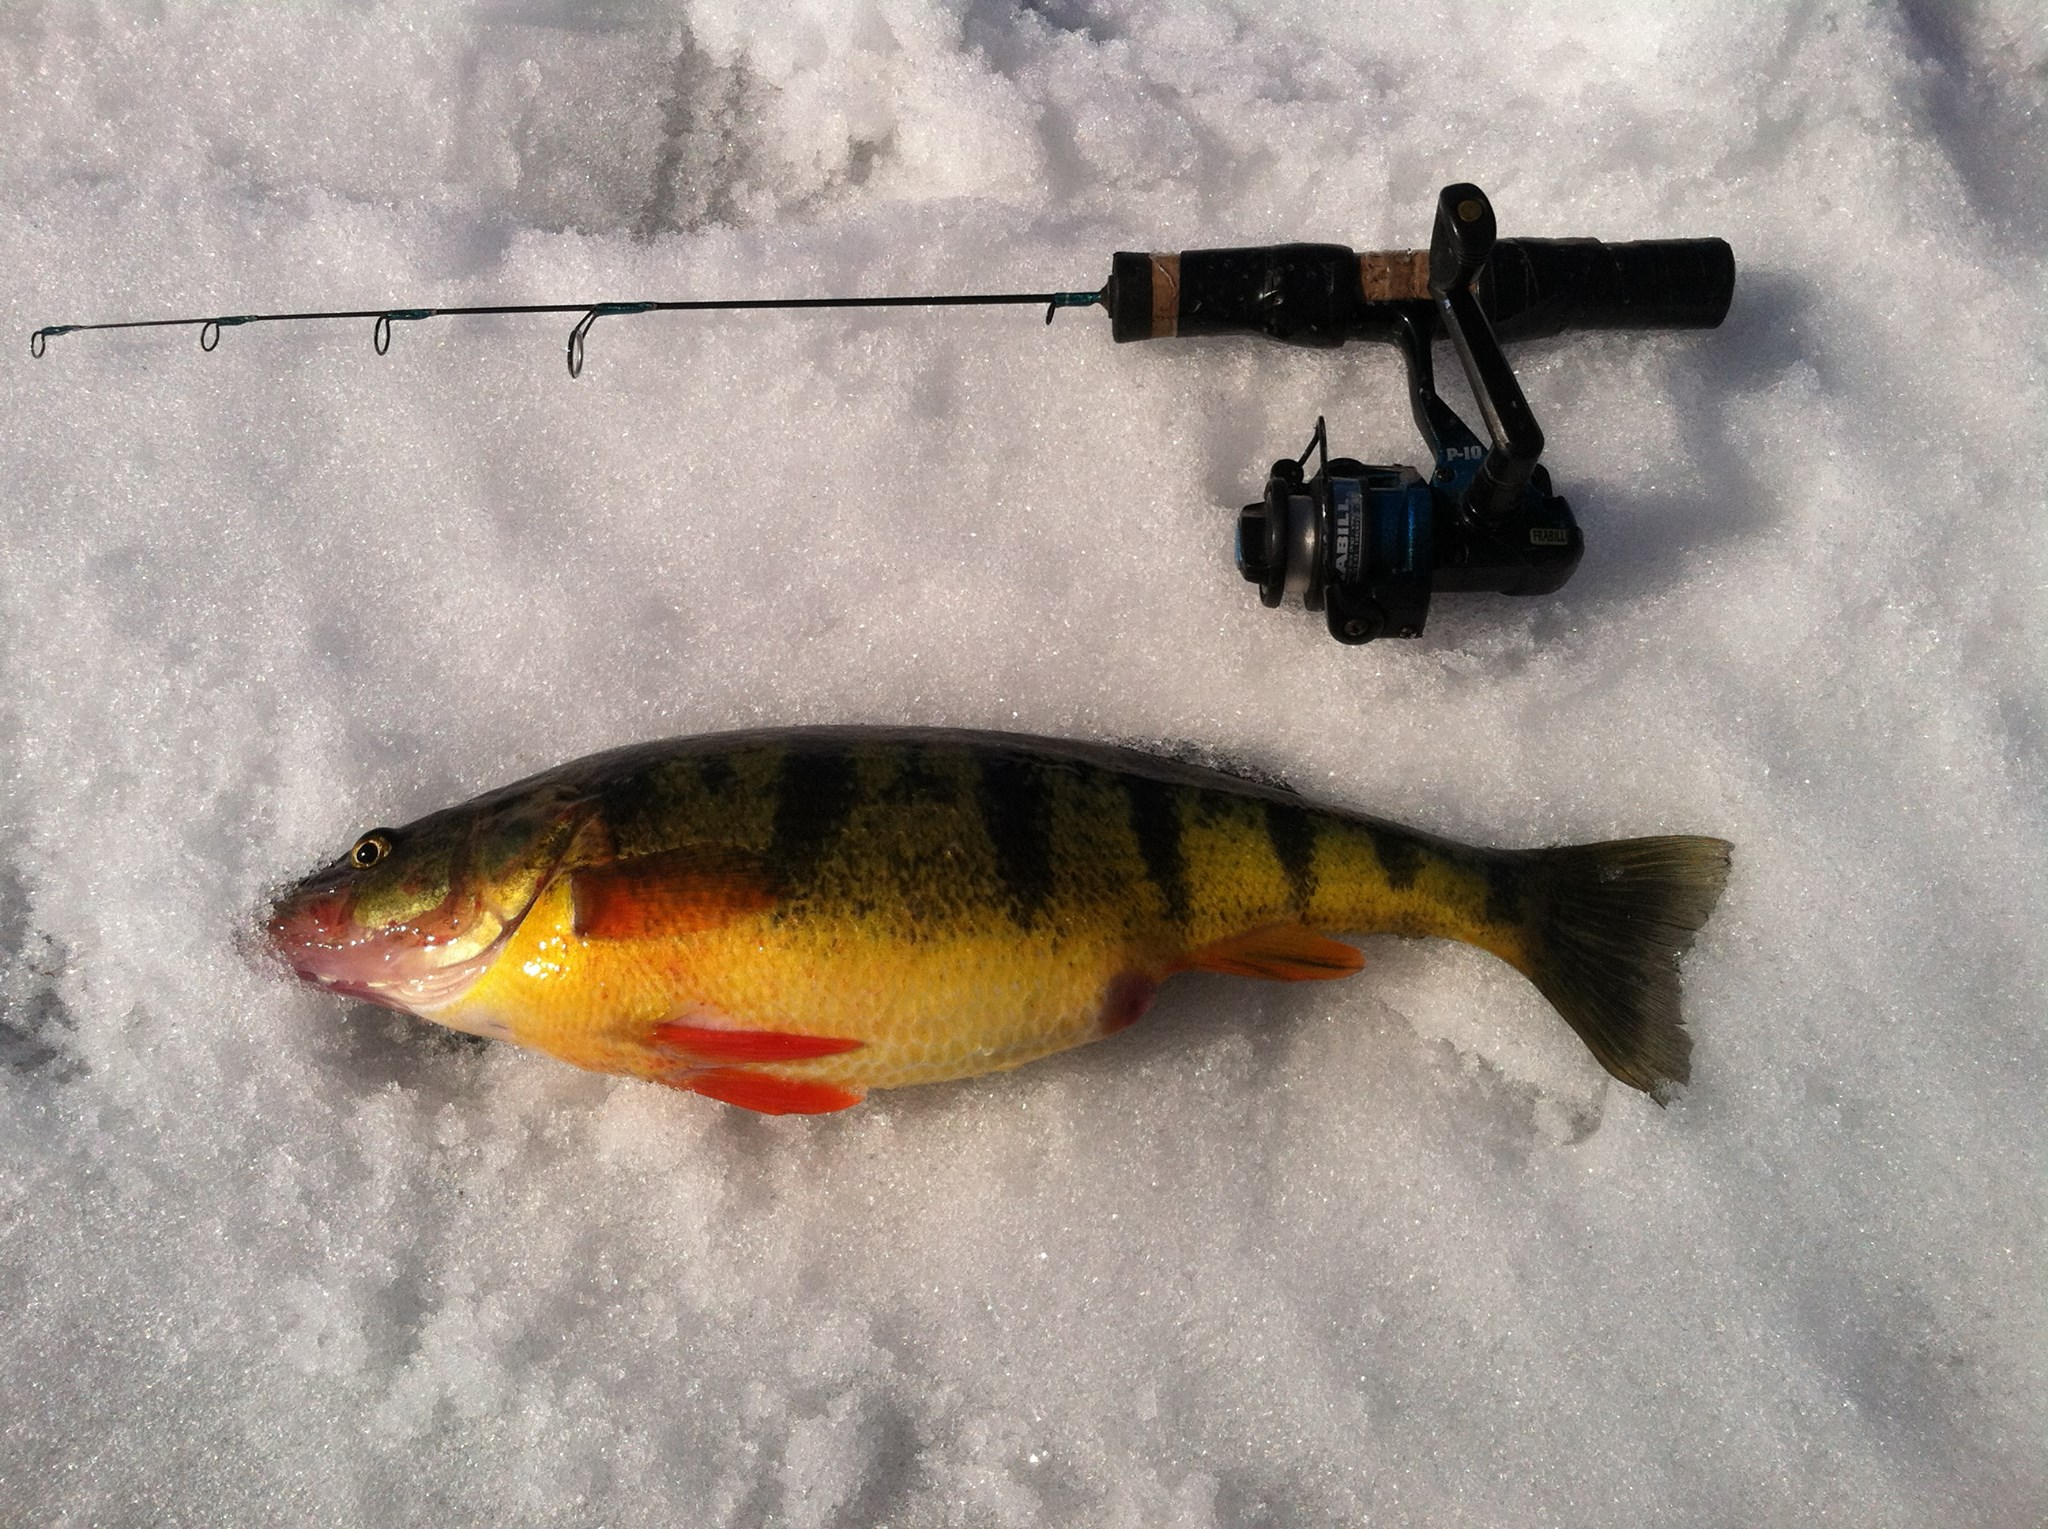 Upstate guide service safe enjoyable and successful for Ice fishing for perch